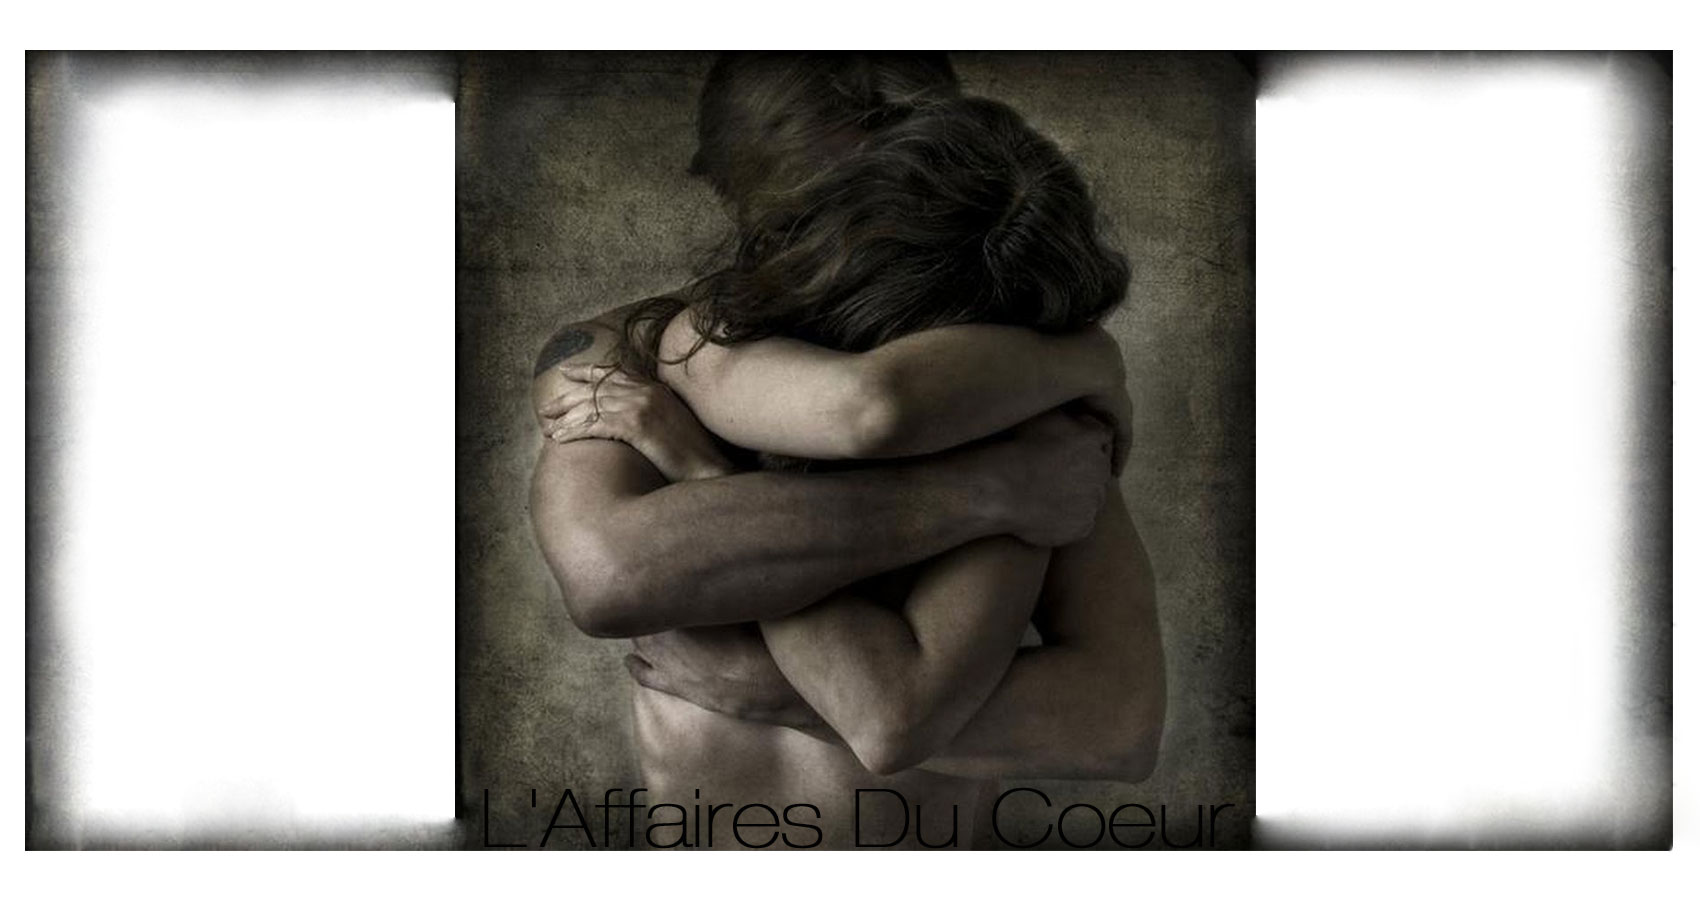 L'Affaires Du Coeur written by Rebellion Girl at Spillwords.com